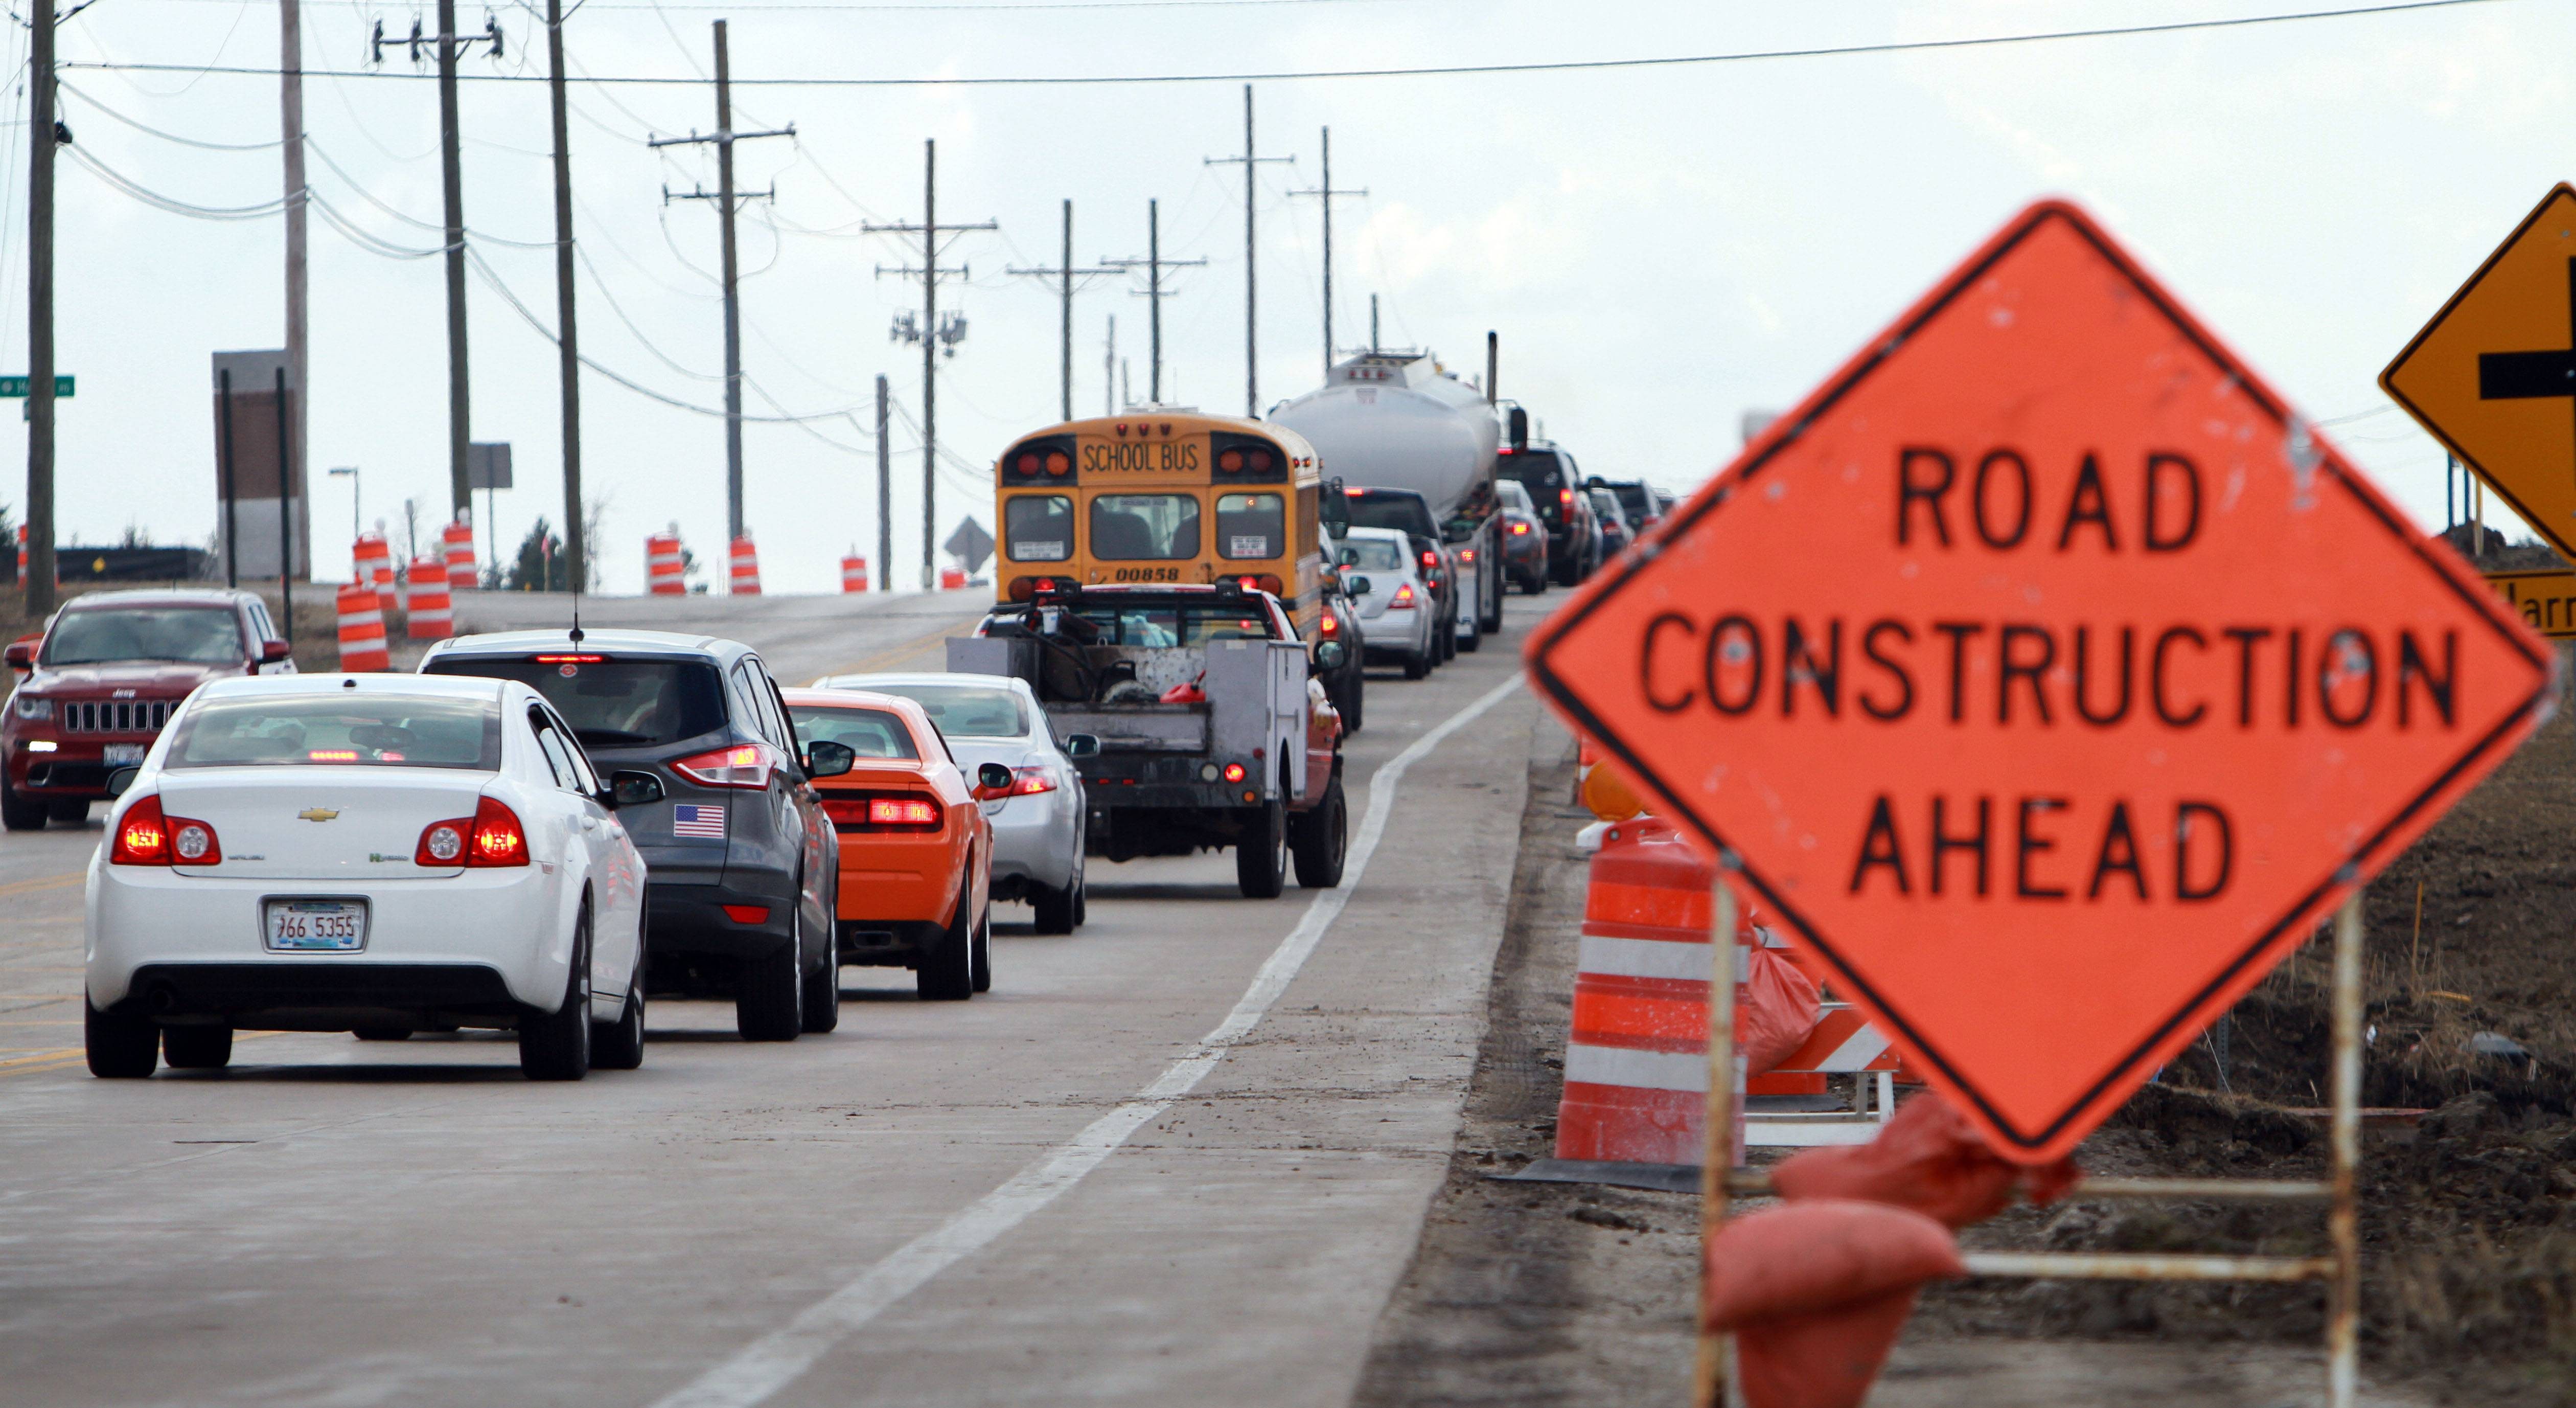 Traffic backs up on Peterson Road near Midlothian Road. Work on the $10.8 million project to widen Midlothian to west of Route 83 began this week.